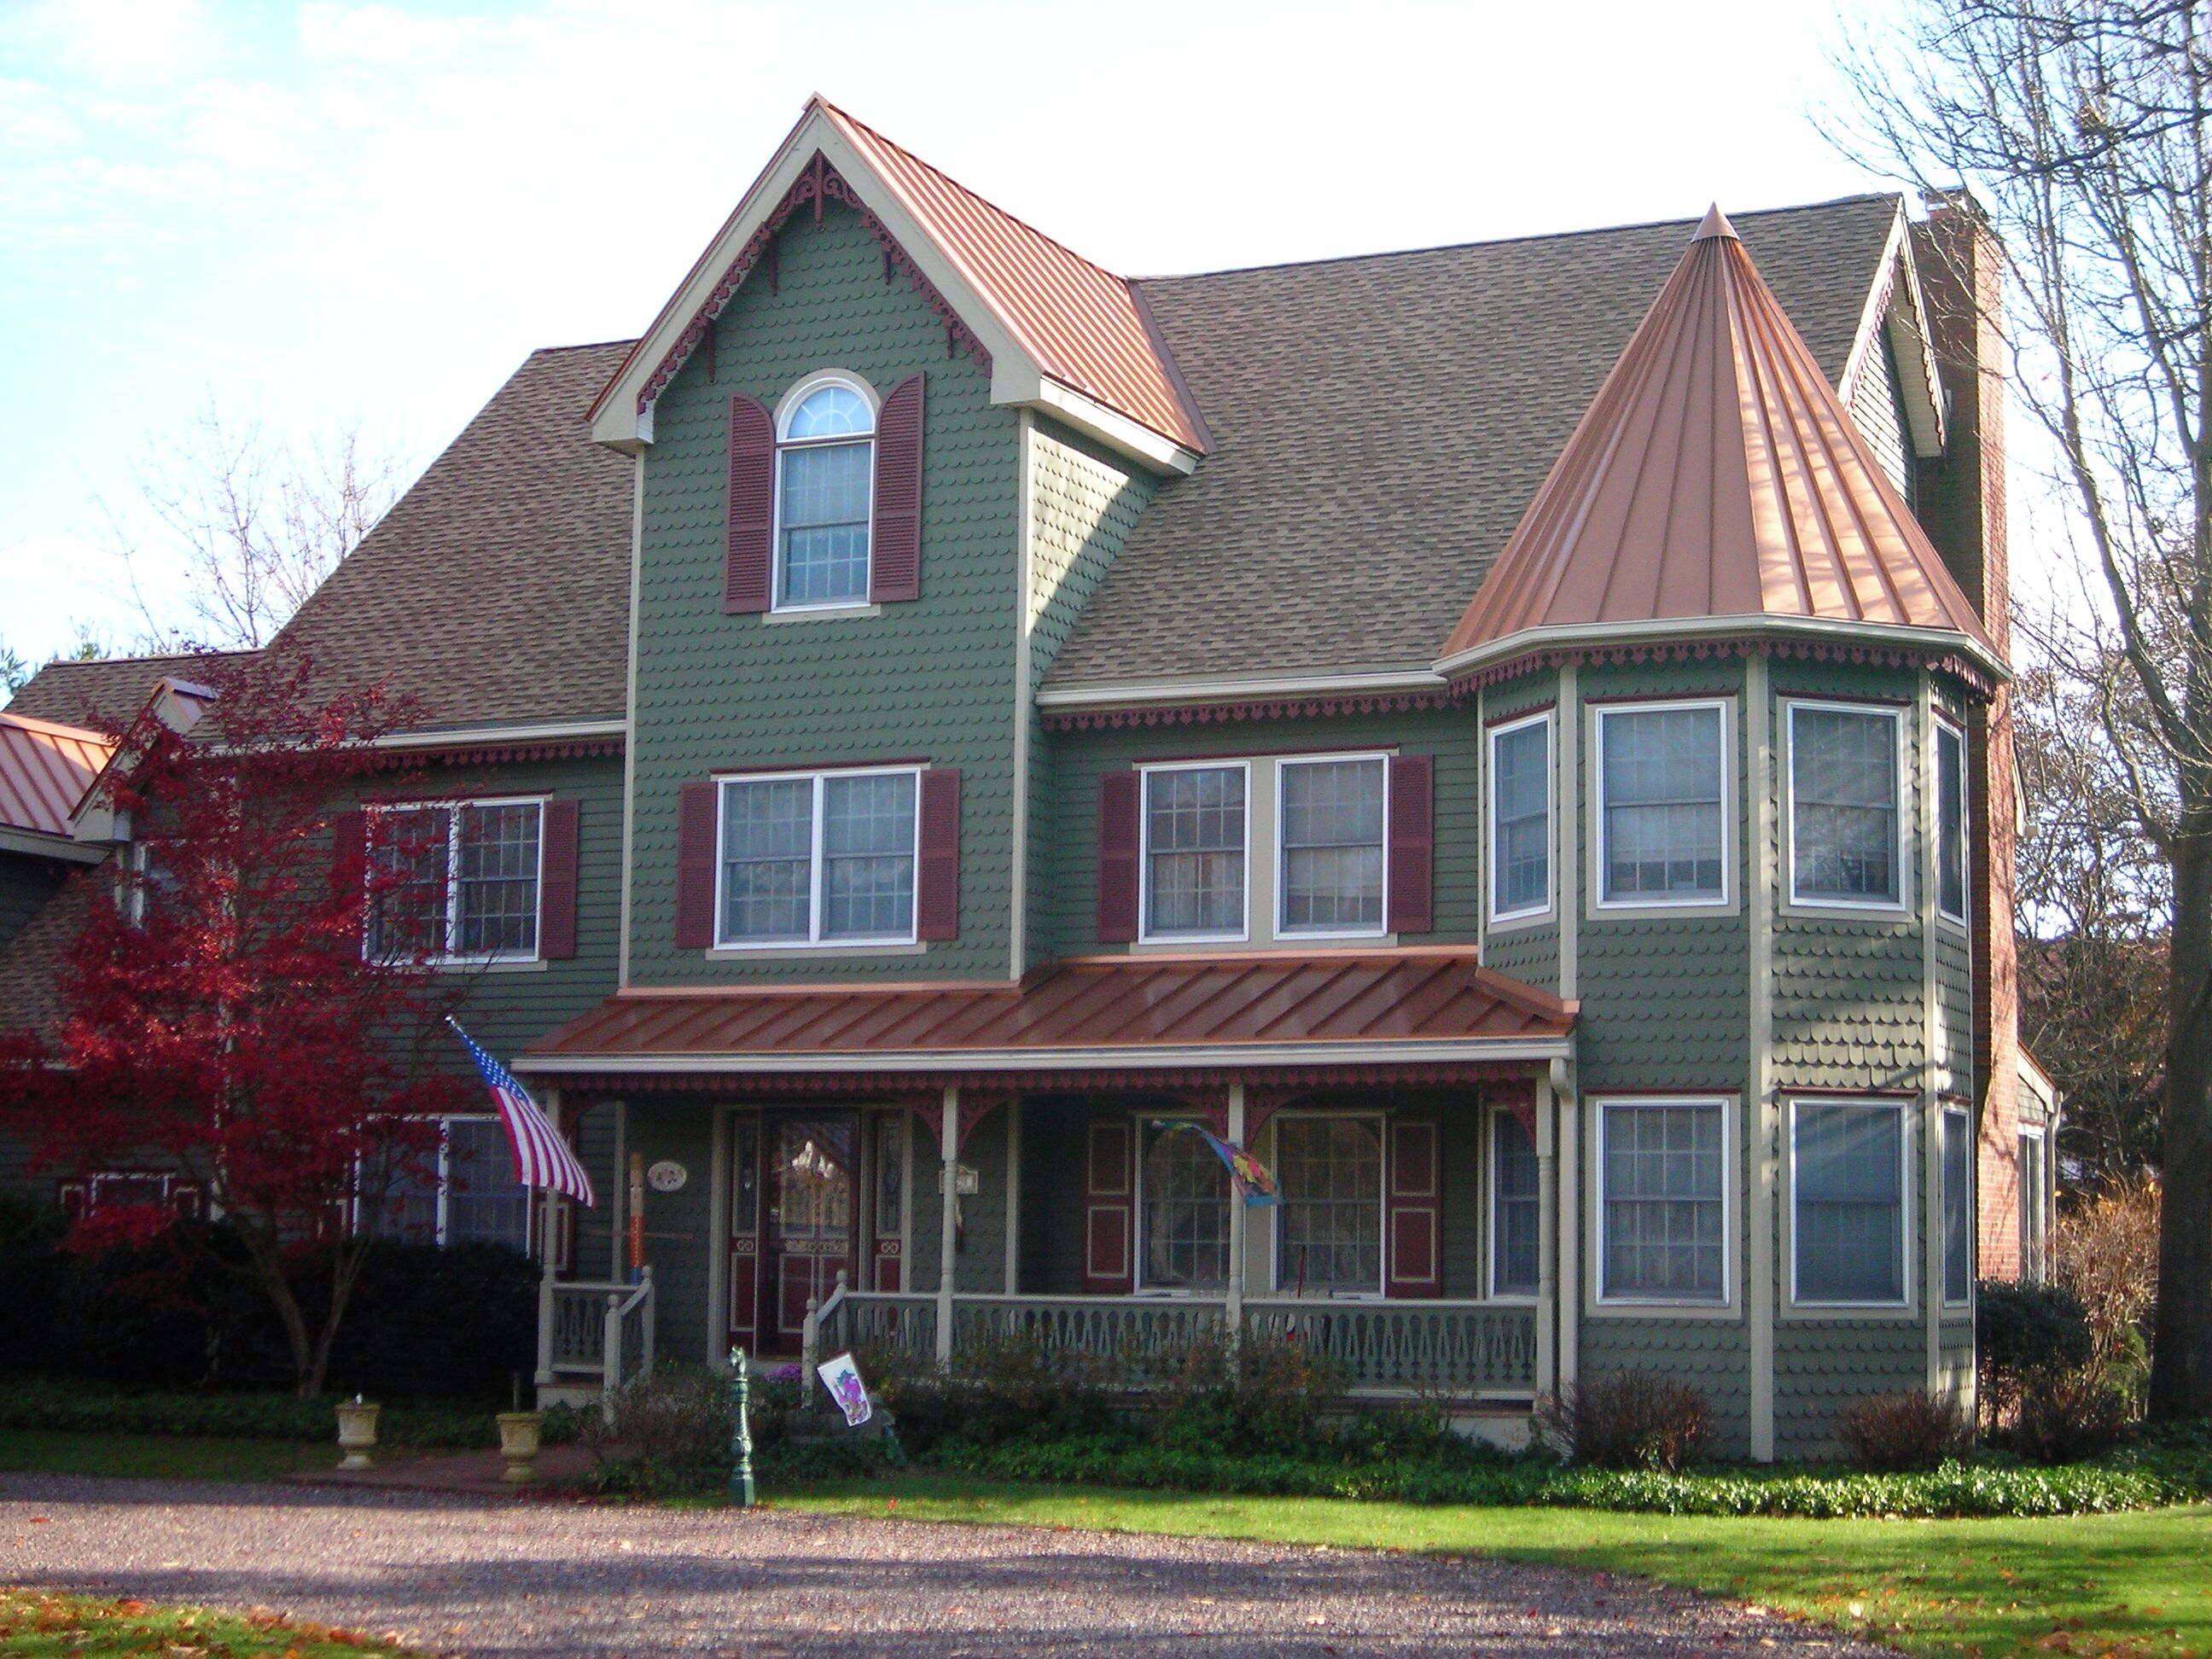 Metal Roof Accent Copper Roof House Farmhouse Exterior Colors Craftsman House